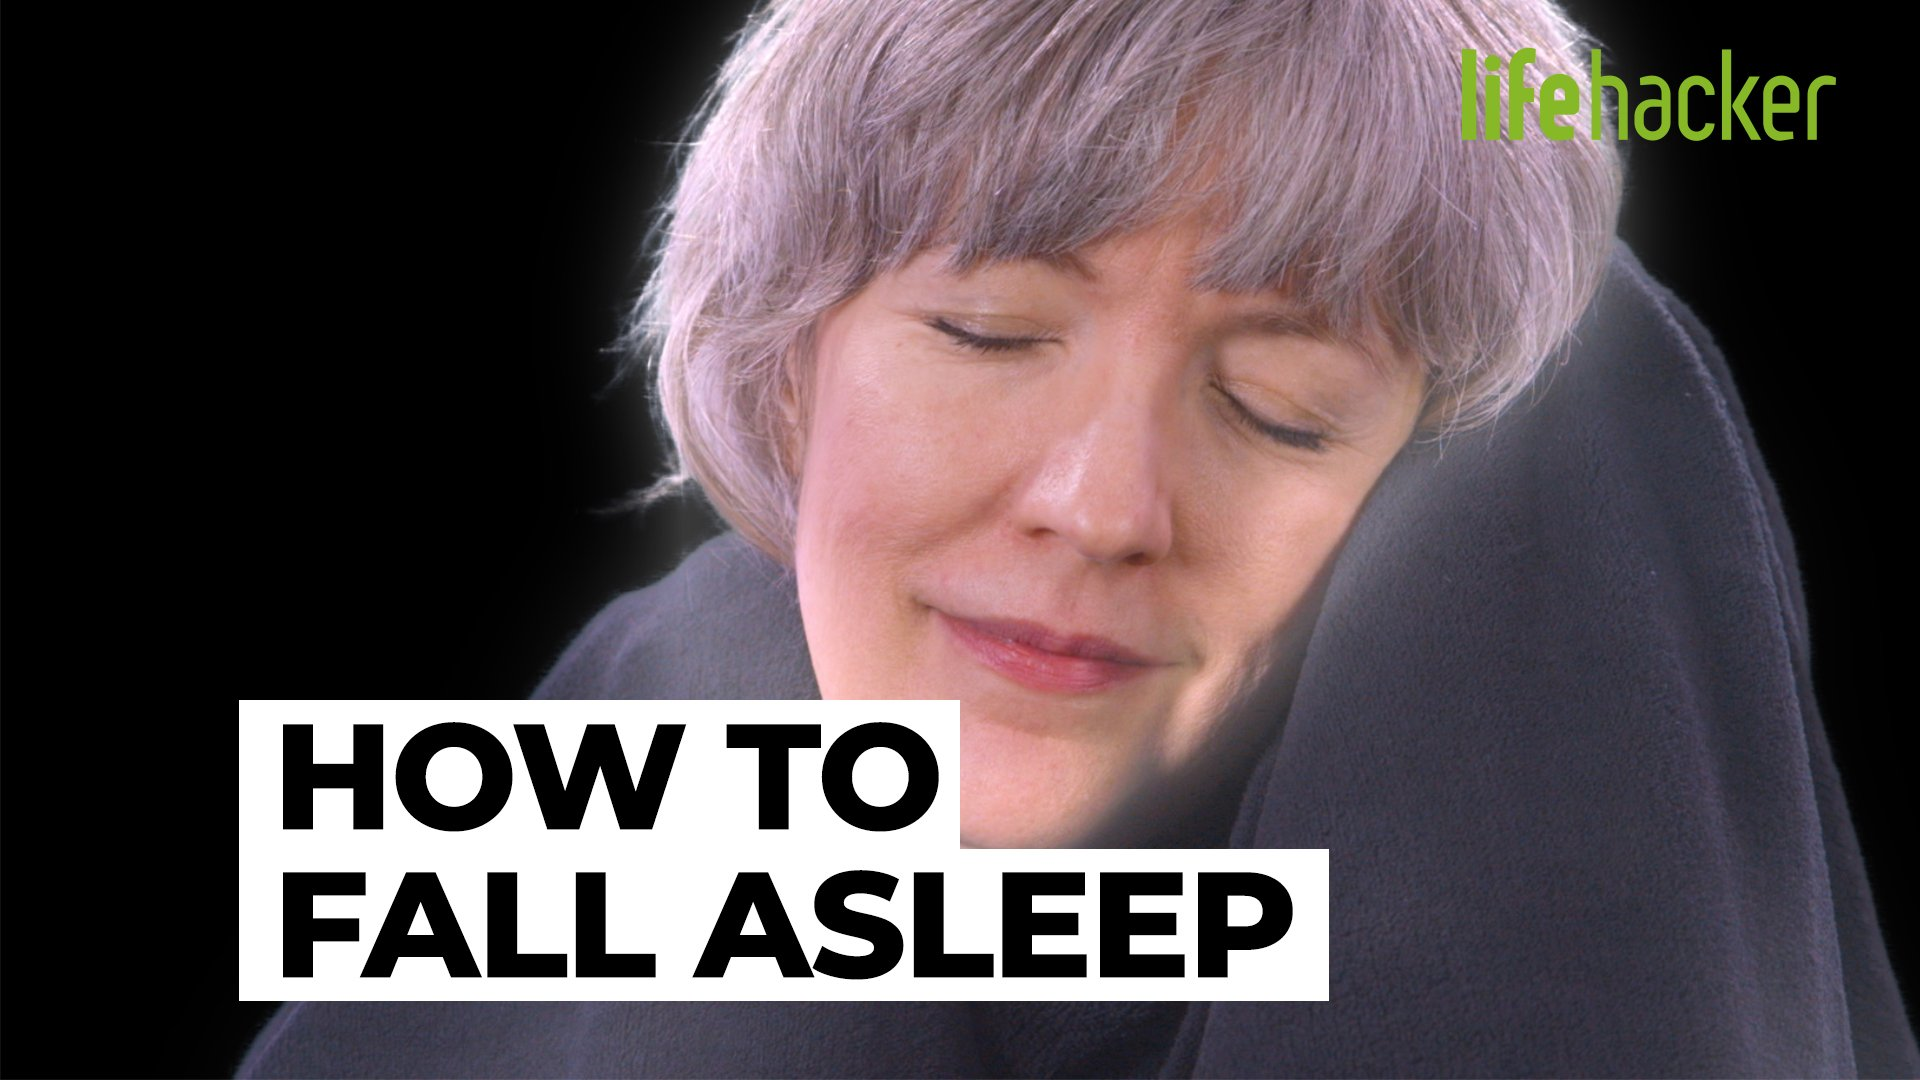 Hey, sleepyhead. Having a hard time nodding off? Are you feeling crushed under the weight of stress and your endless, looping thoughts?  We've got some tips that'll help lull you into sleep's warm, relaxing embrace. https://t.co/lksRe77kSw